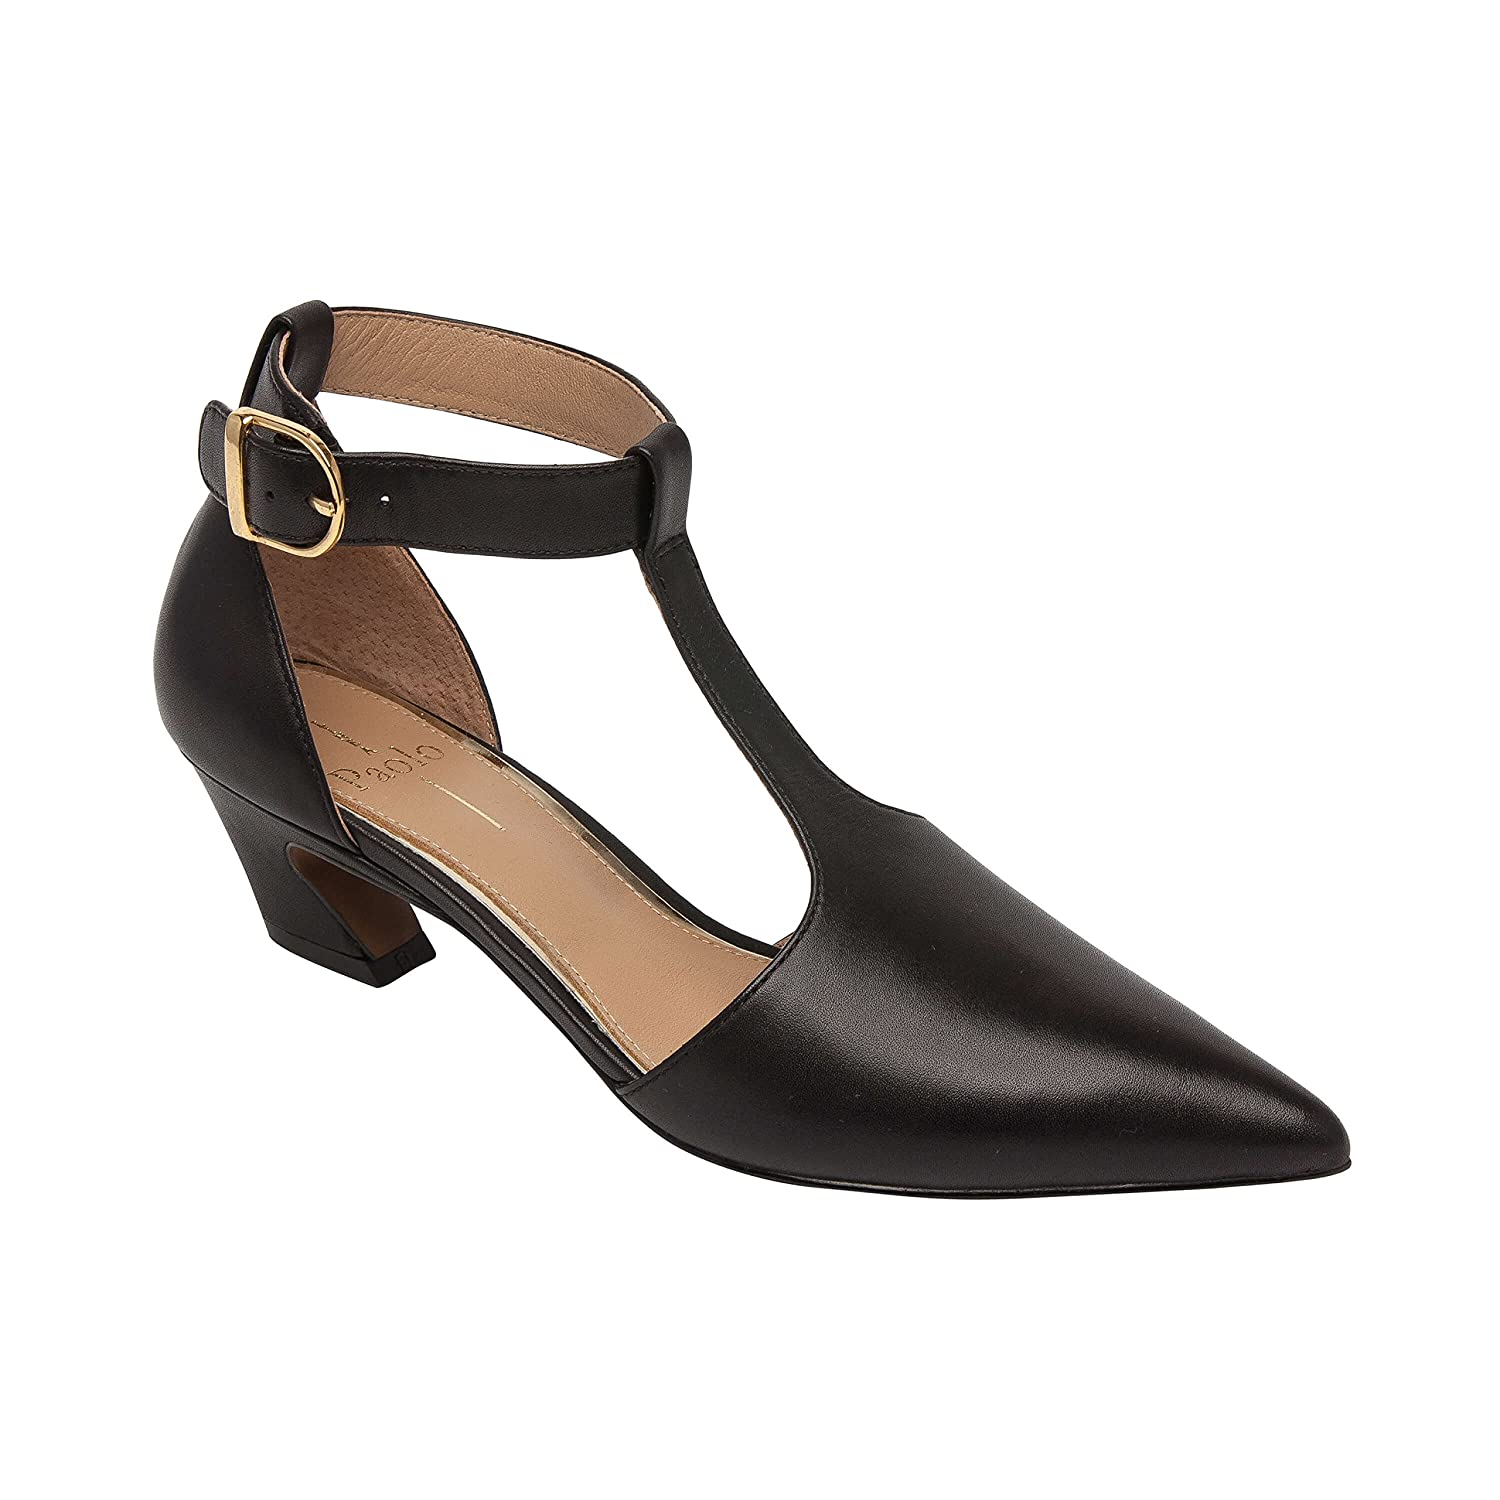 Greta | Pointy Toe T Strap Low Cuban Heel Leather or Suede Buckled Ankle Strap Pump (New Fall)